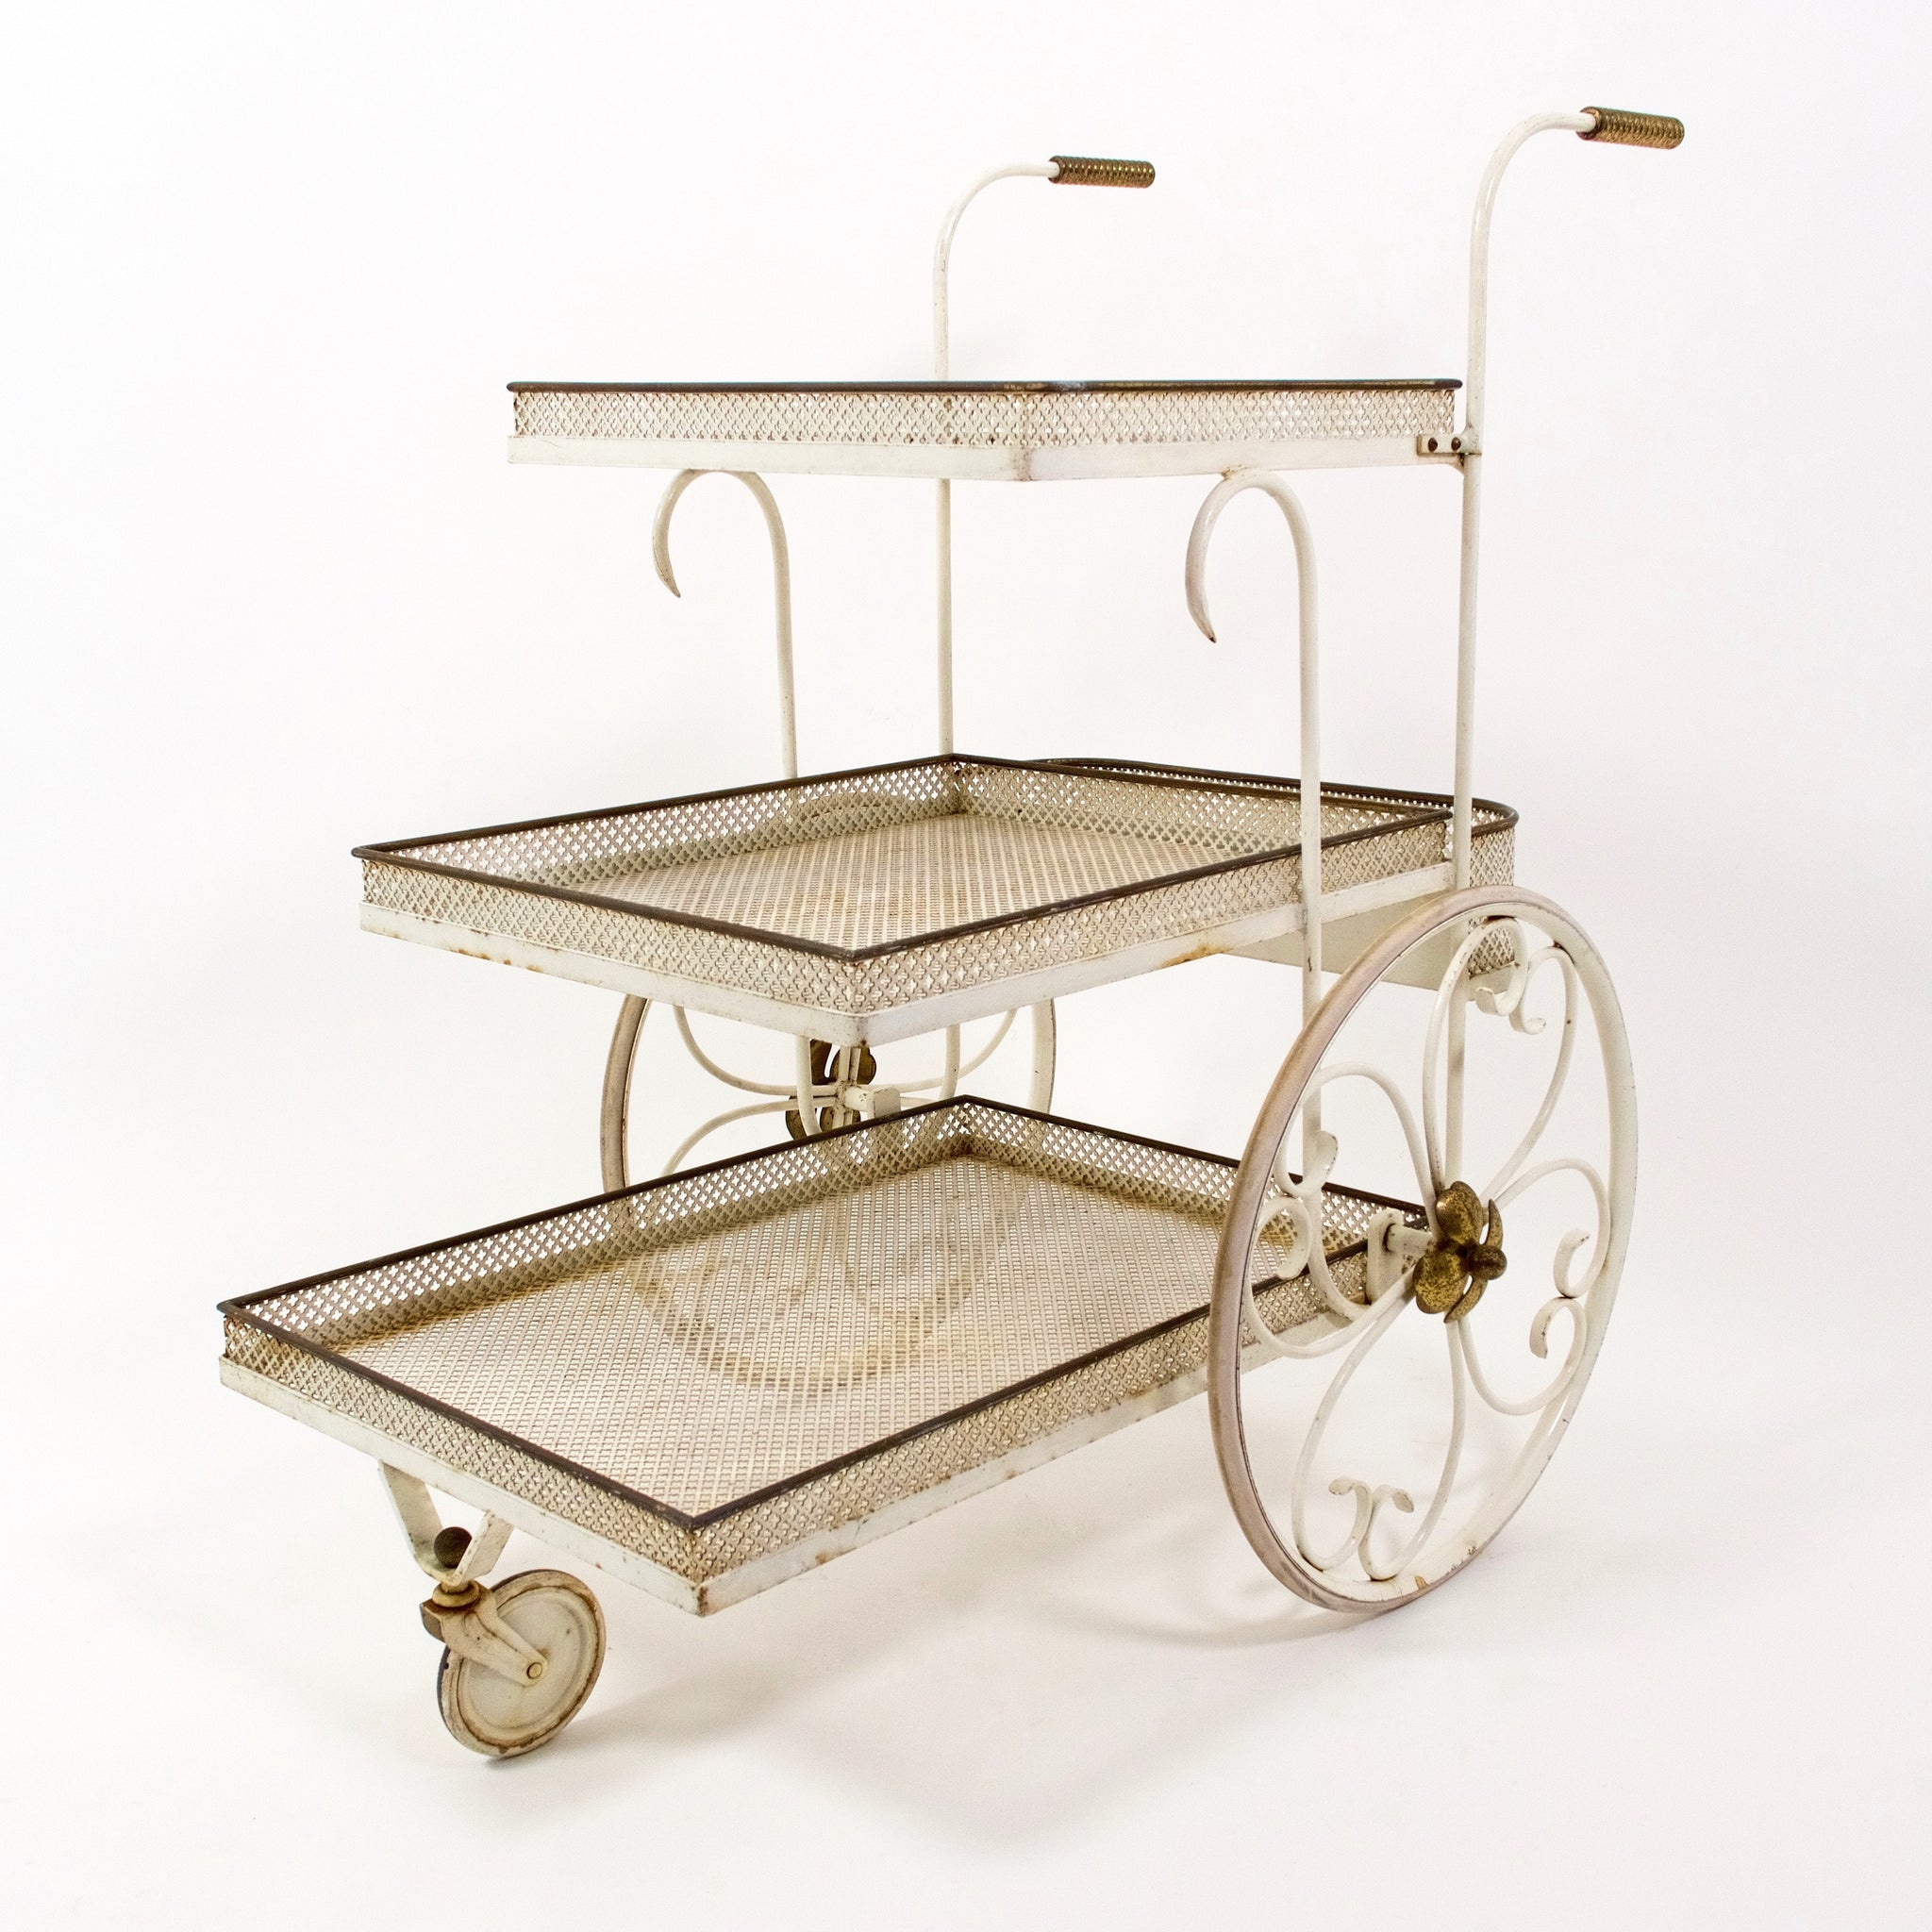 Vintage french bar cart in the style of Mathieu Mategot .